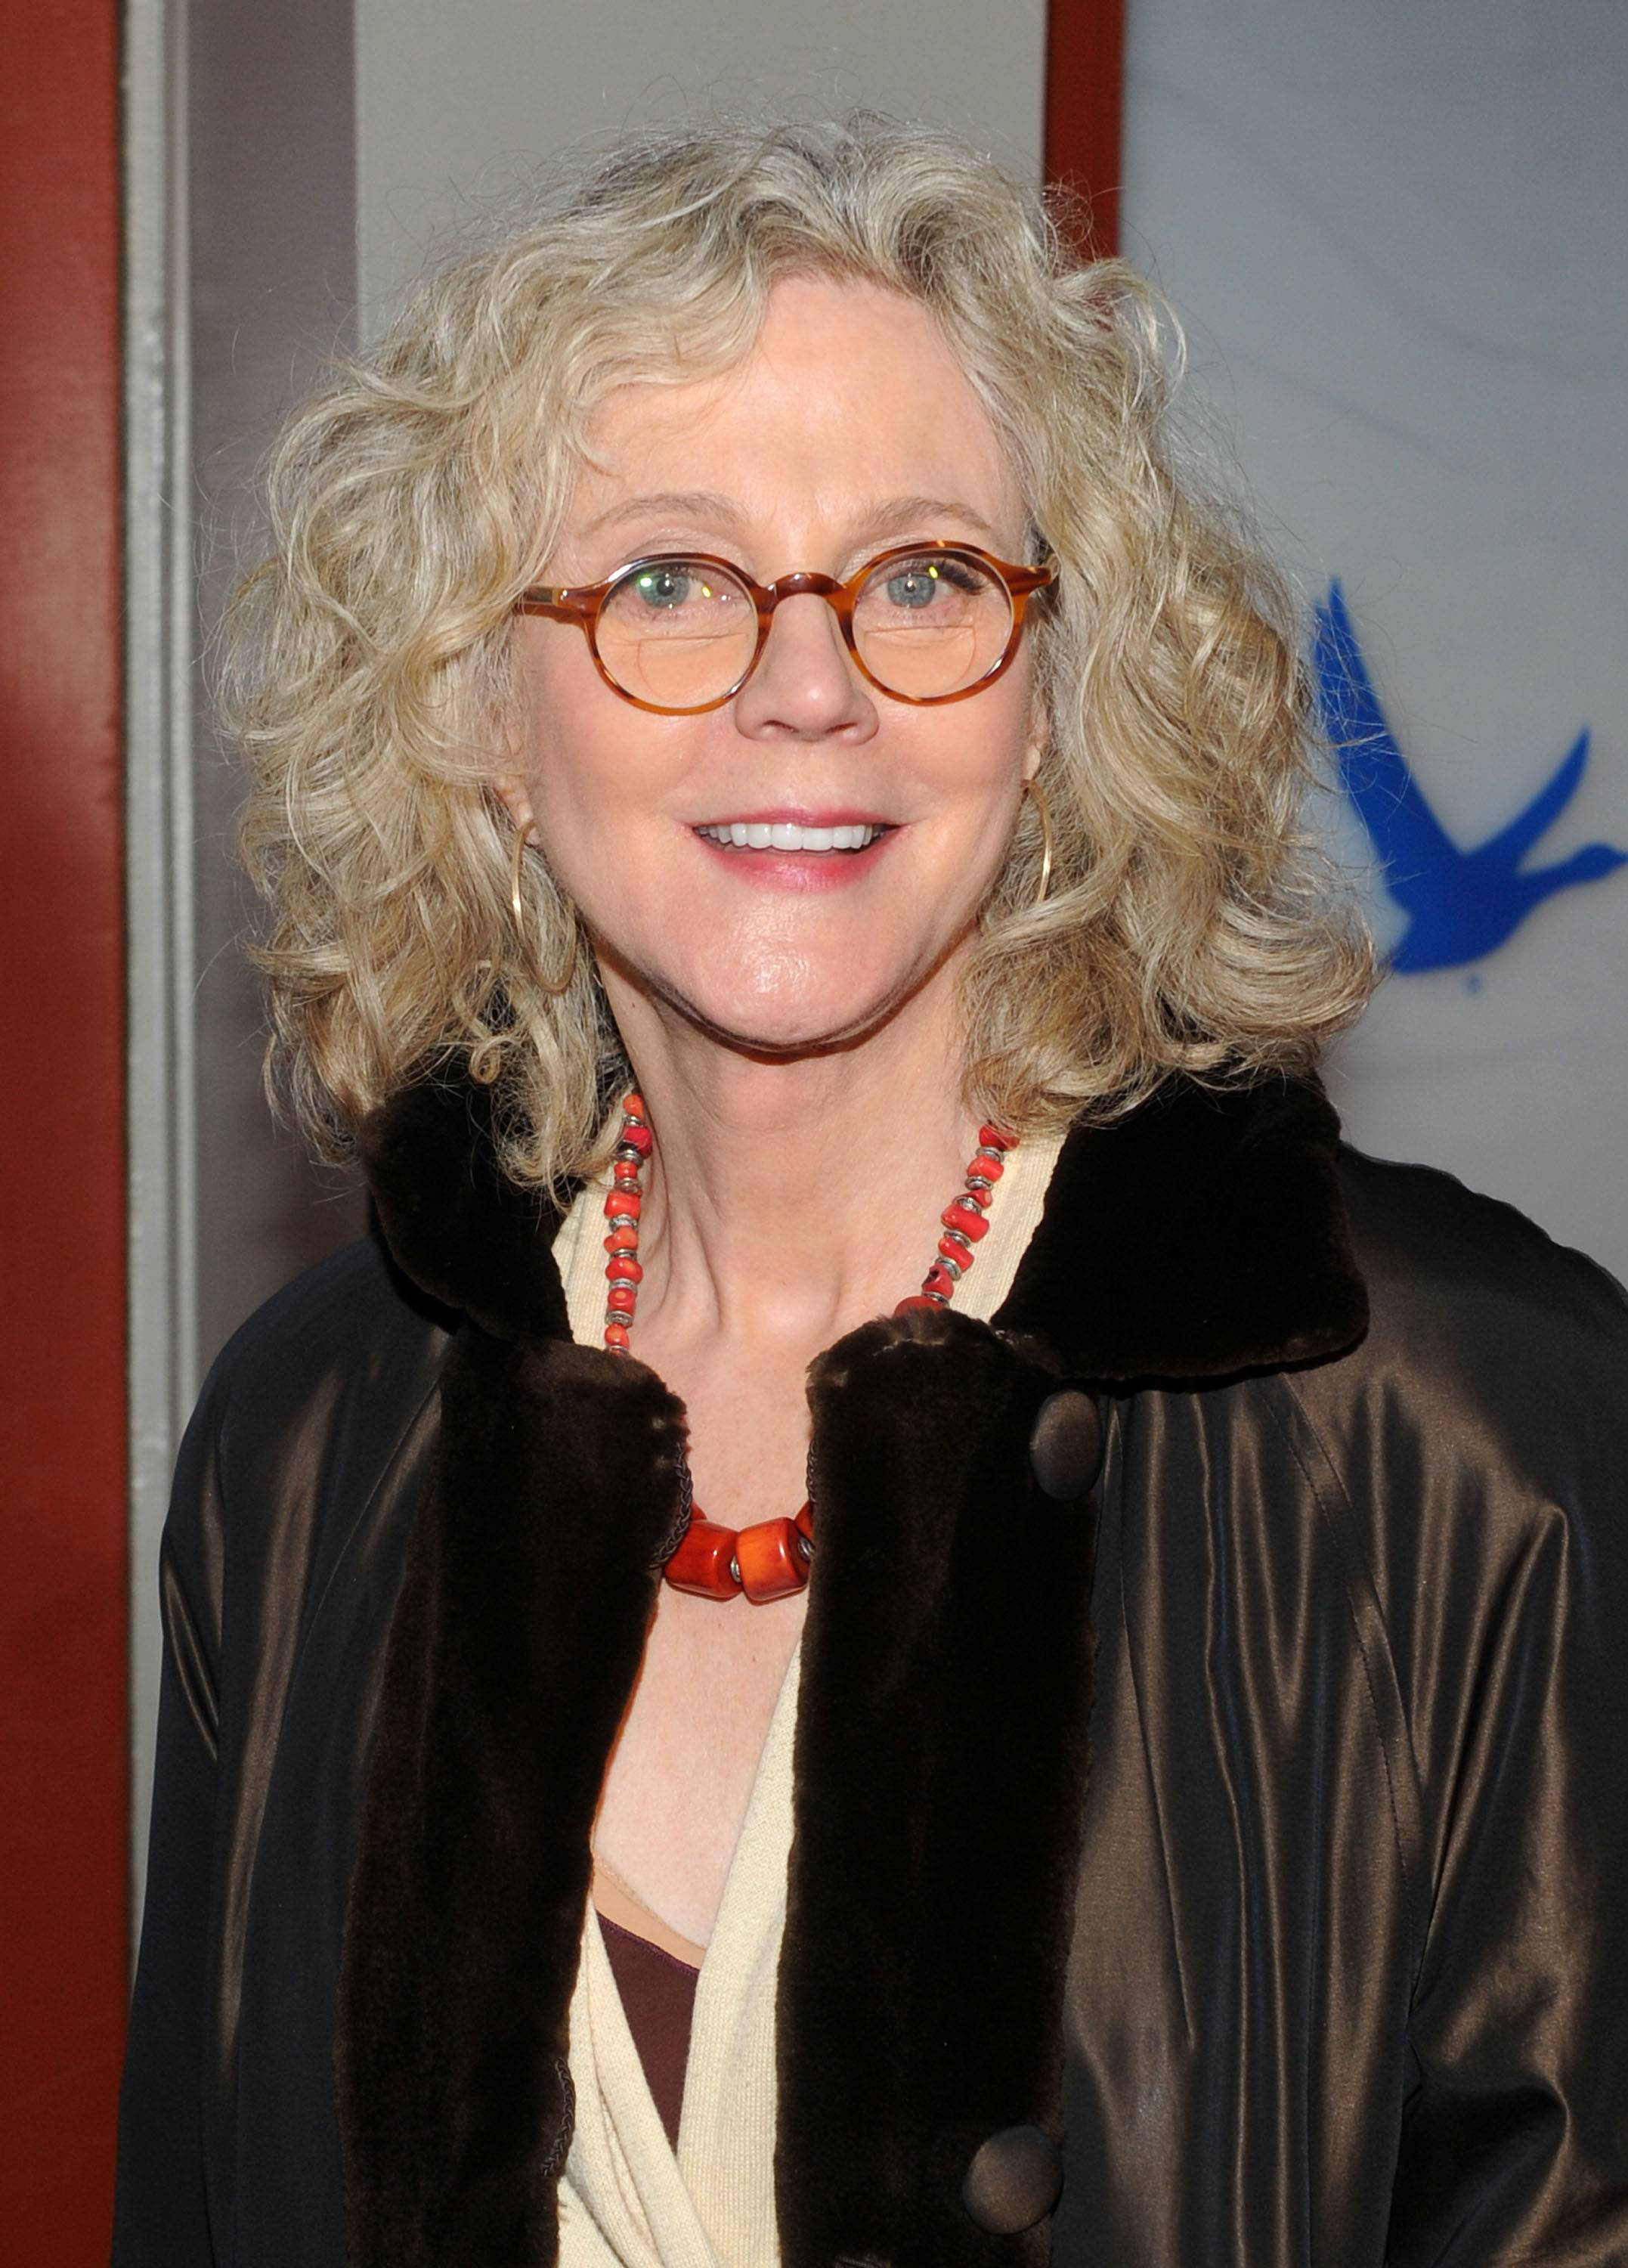 Blythe Danner at the GREY GOOSE Blue Door at Sundance on Friday 1-20-12